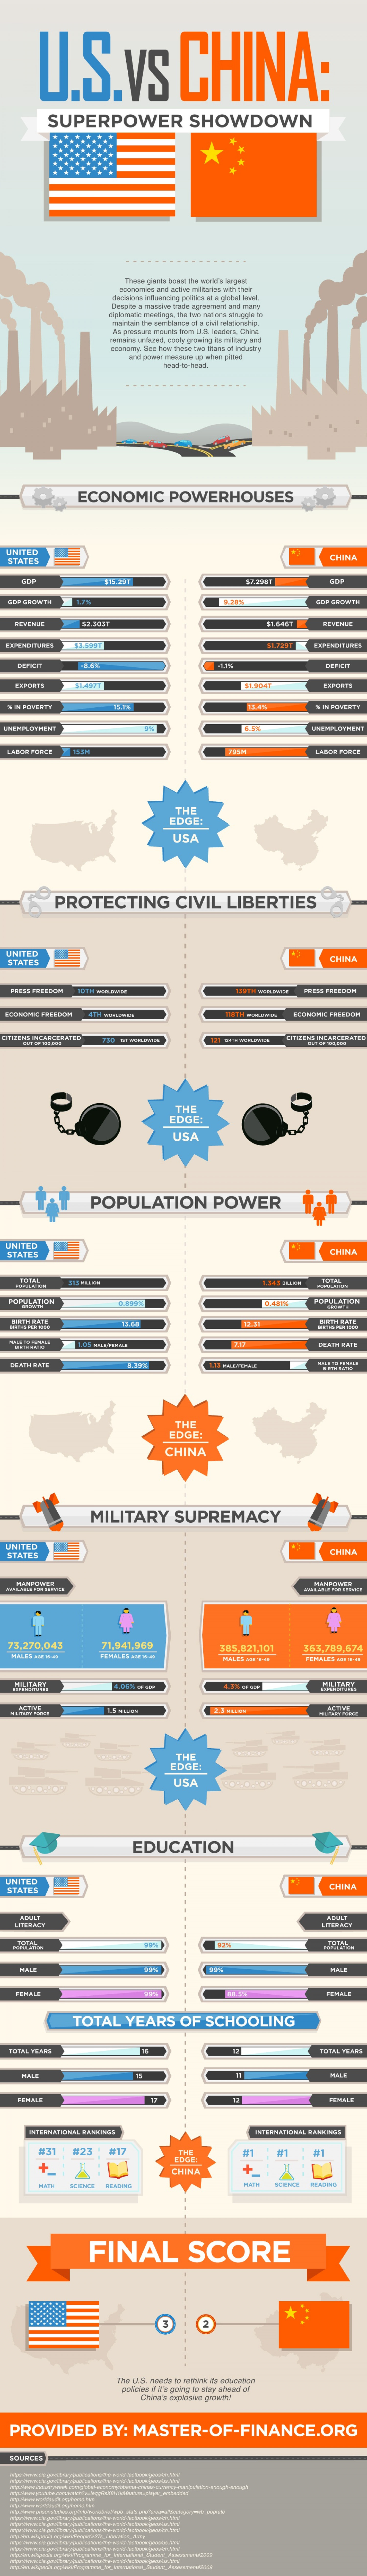 US vs. China - Superpower showdown Infographic